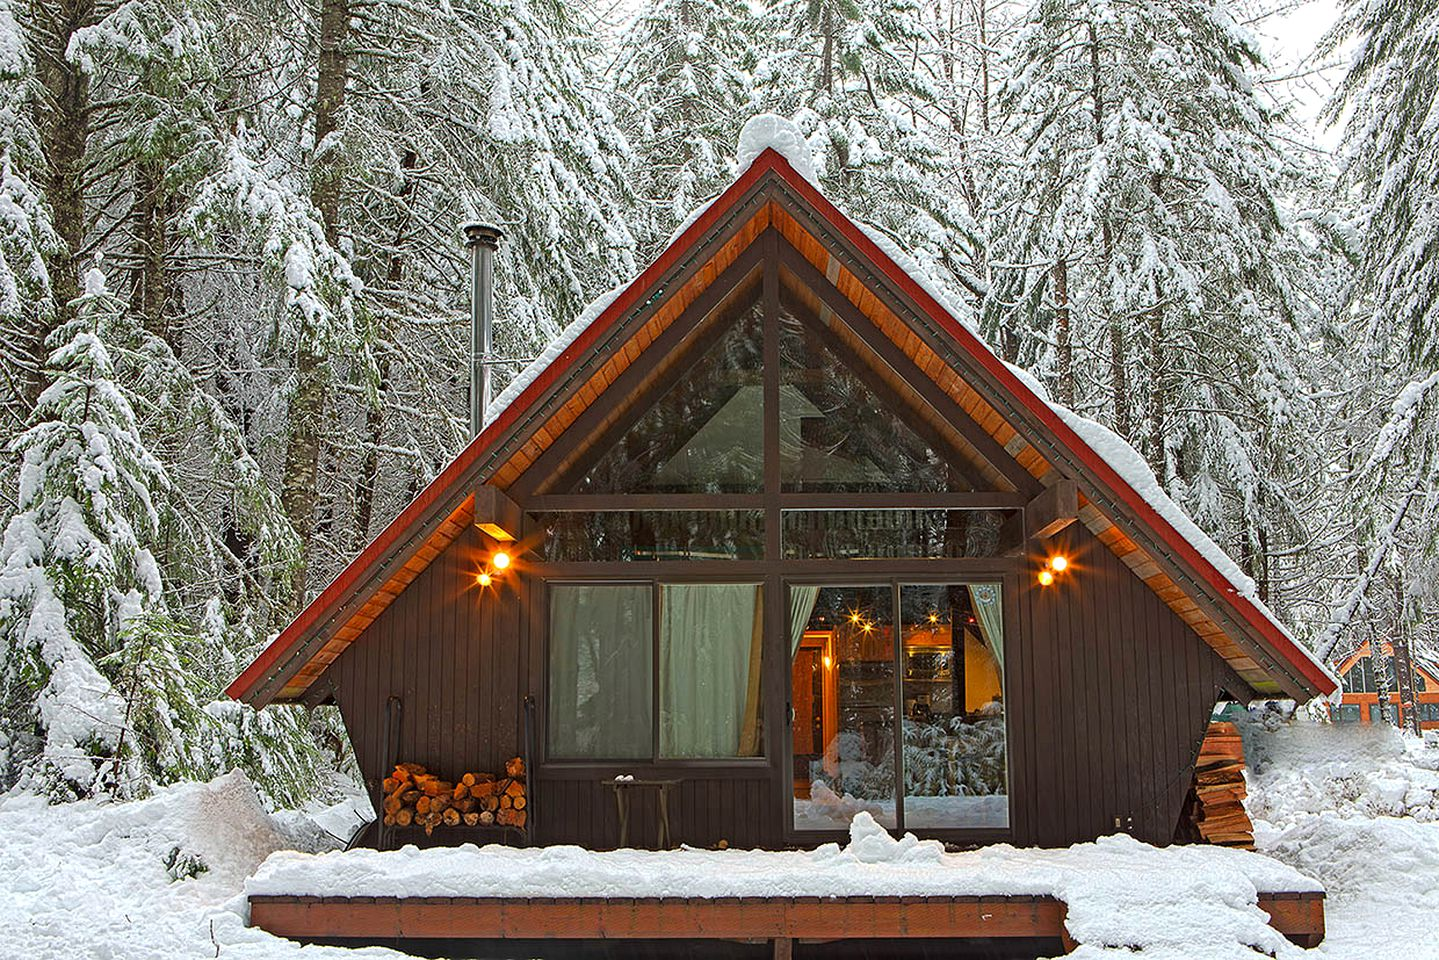 A-Frame Cabins (Greenwater, Washington, United States)